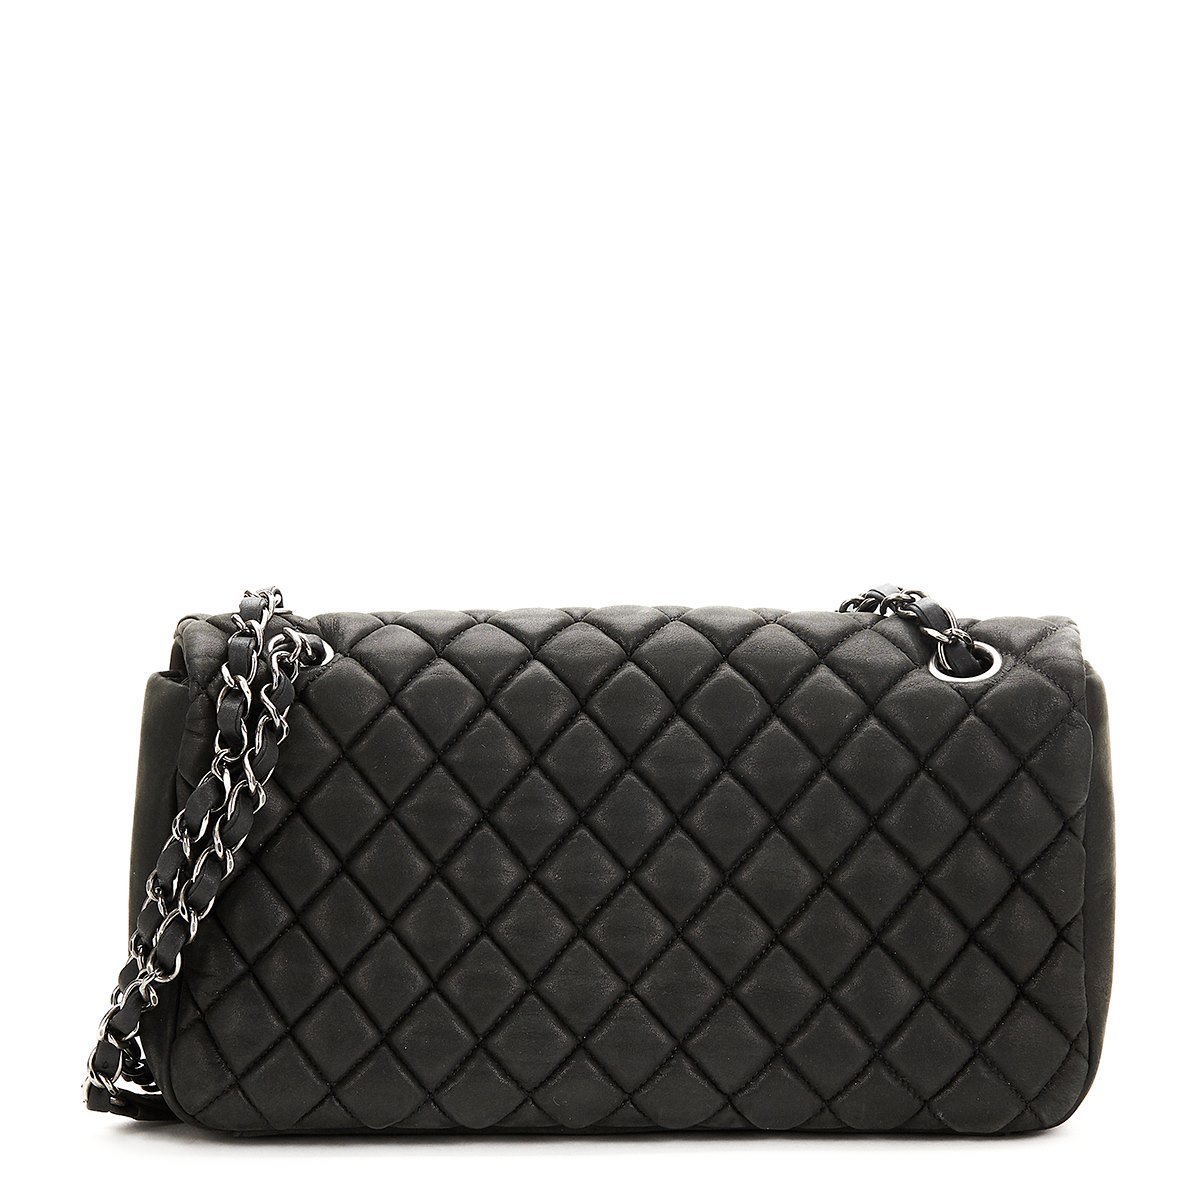 4fd68576ffa5db Chanel Small Flap Bag Discontinued | Stanford Center for Opportunity ...